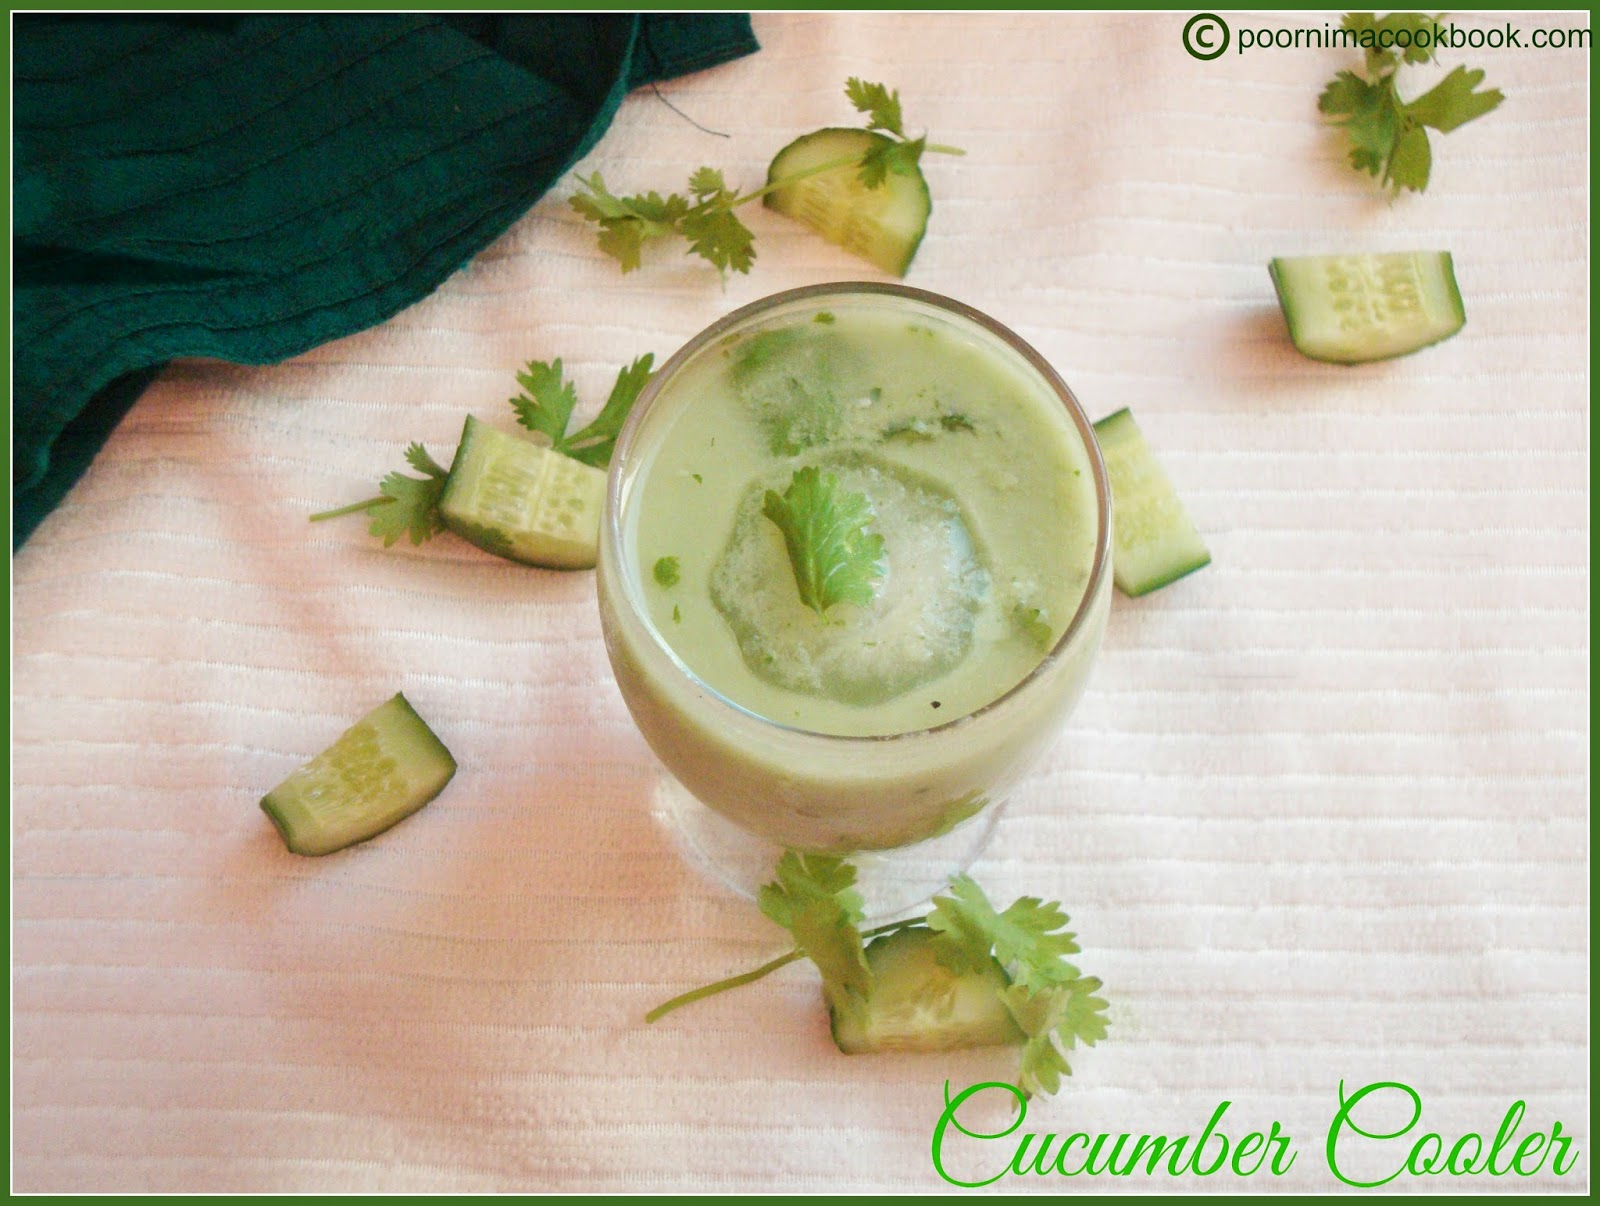 ... Cook Book: Cucumber Cooler / Cucumber Juice / Cucumber Yogurt Drink